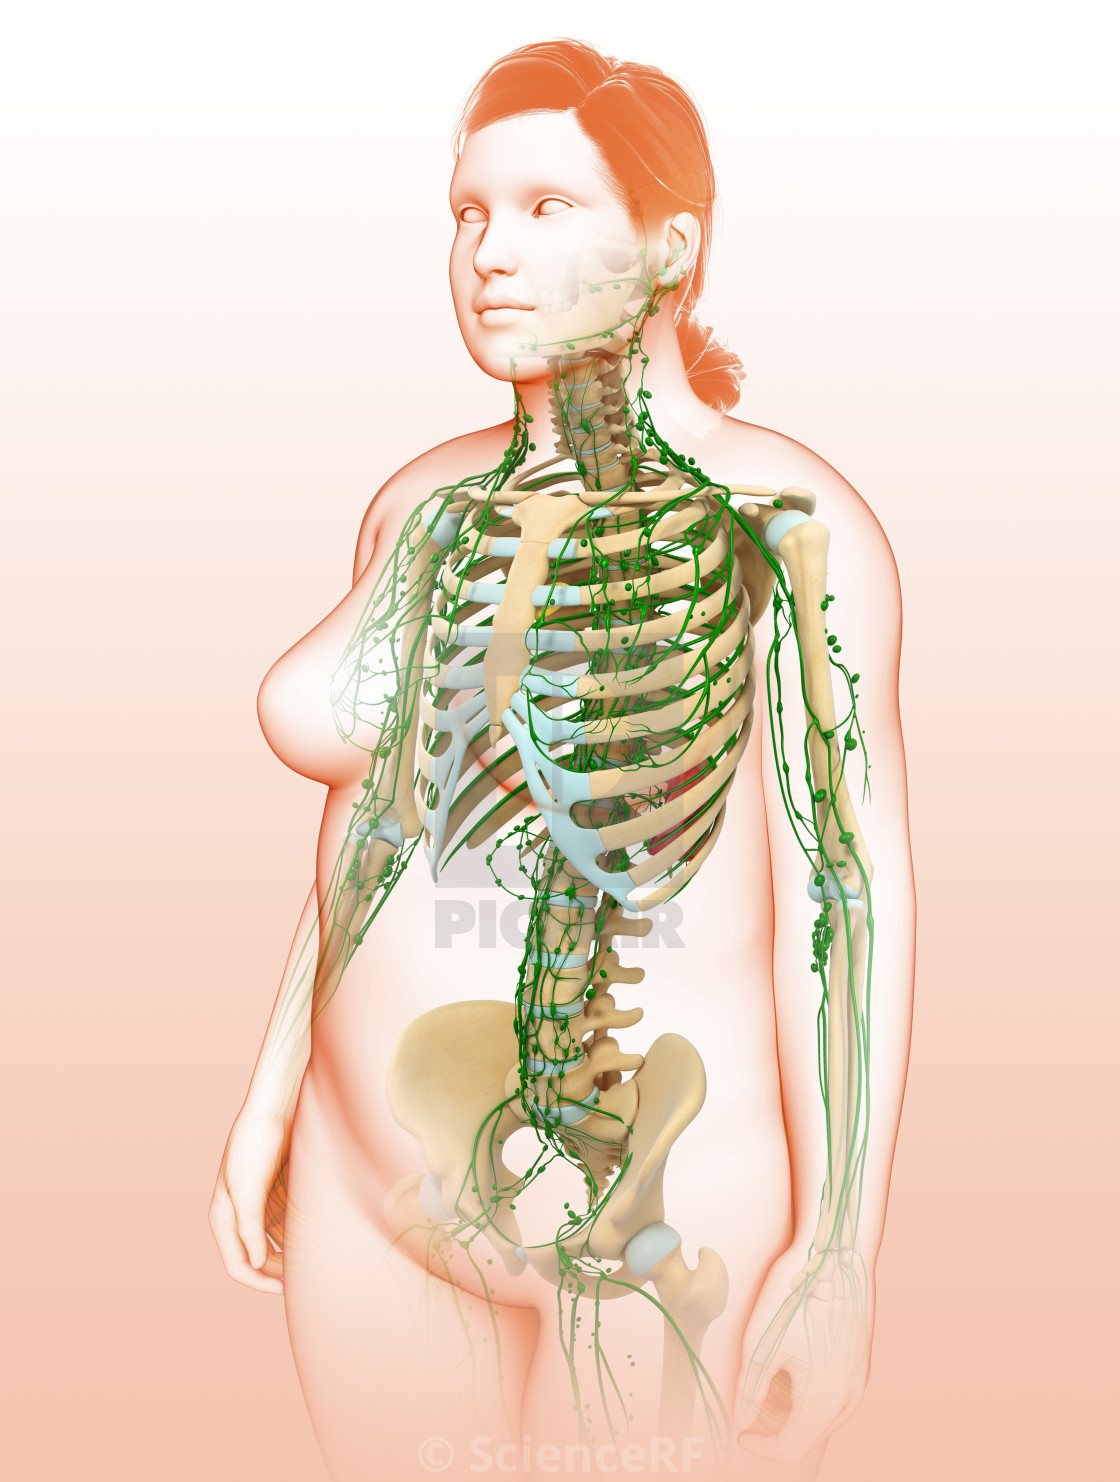 Female Lymphatic System Illustration License For 3900 On Picfair